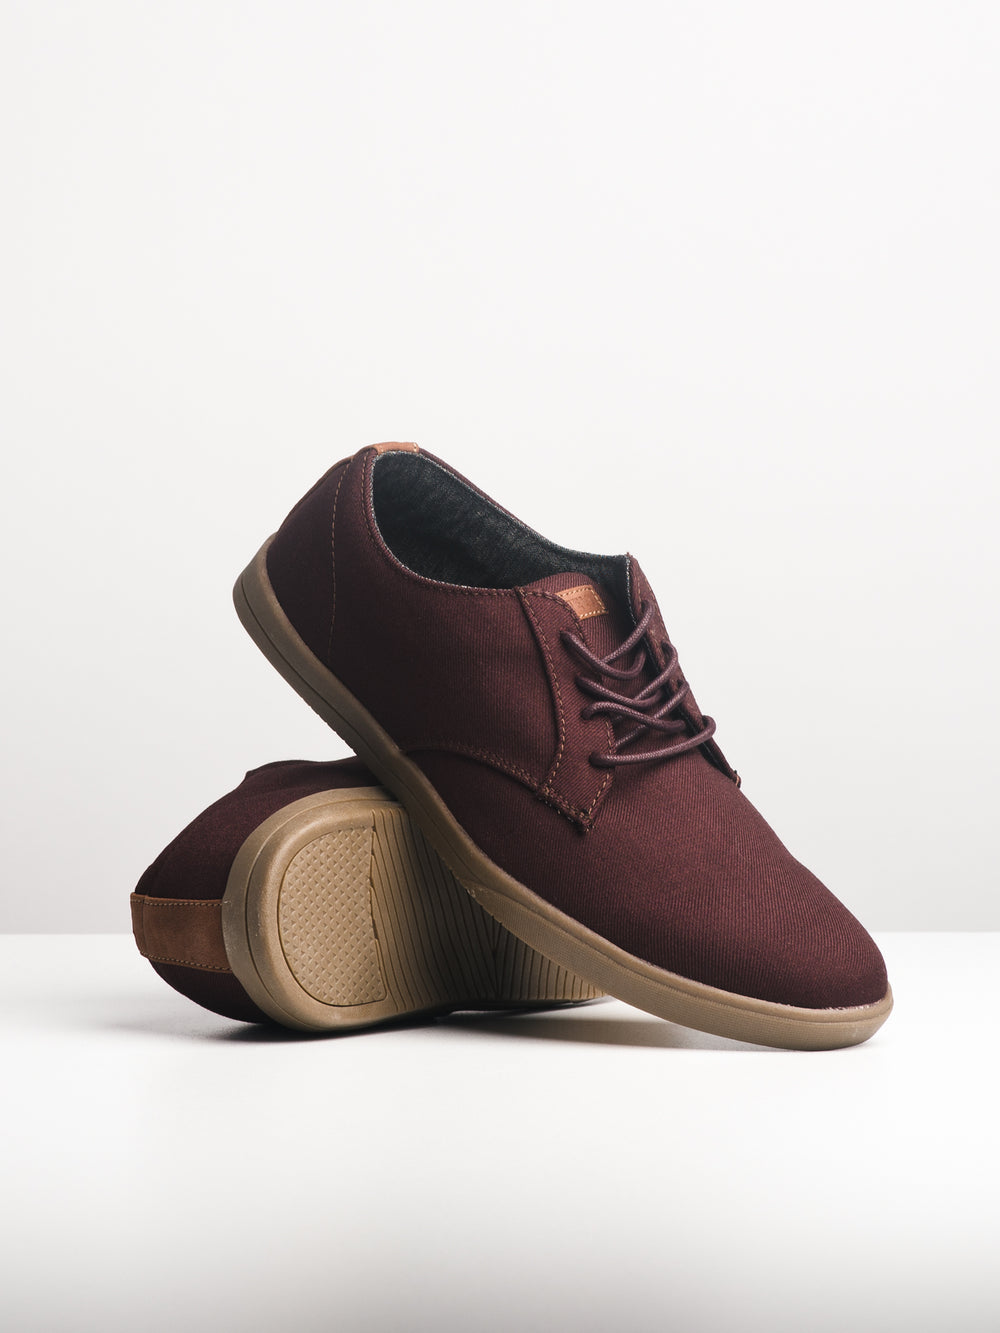 MENS REID - BURGUNDY-D4